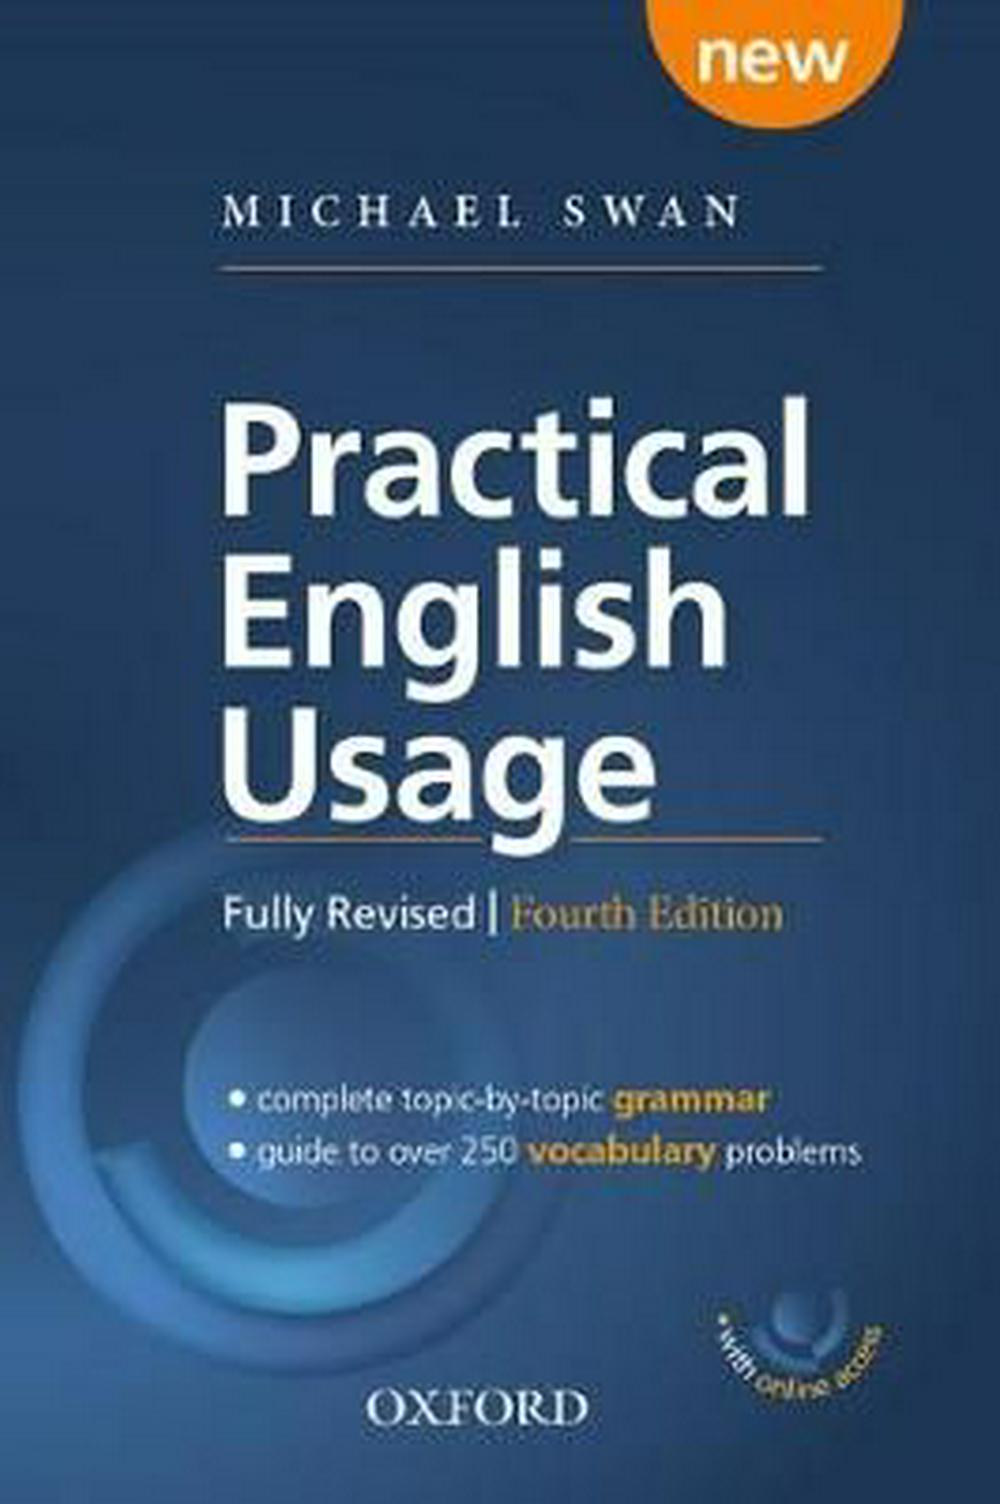 Practical English Usage, 4th edition: Paperback with online access: Michael Swan's guide to problems in English